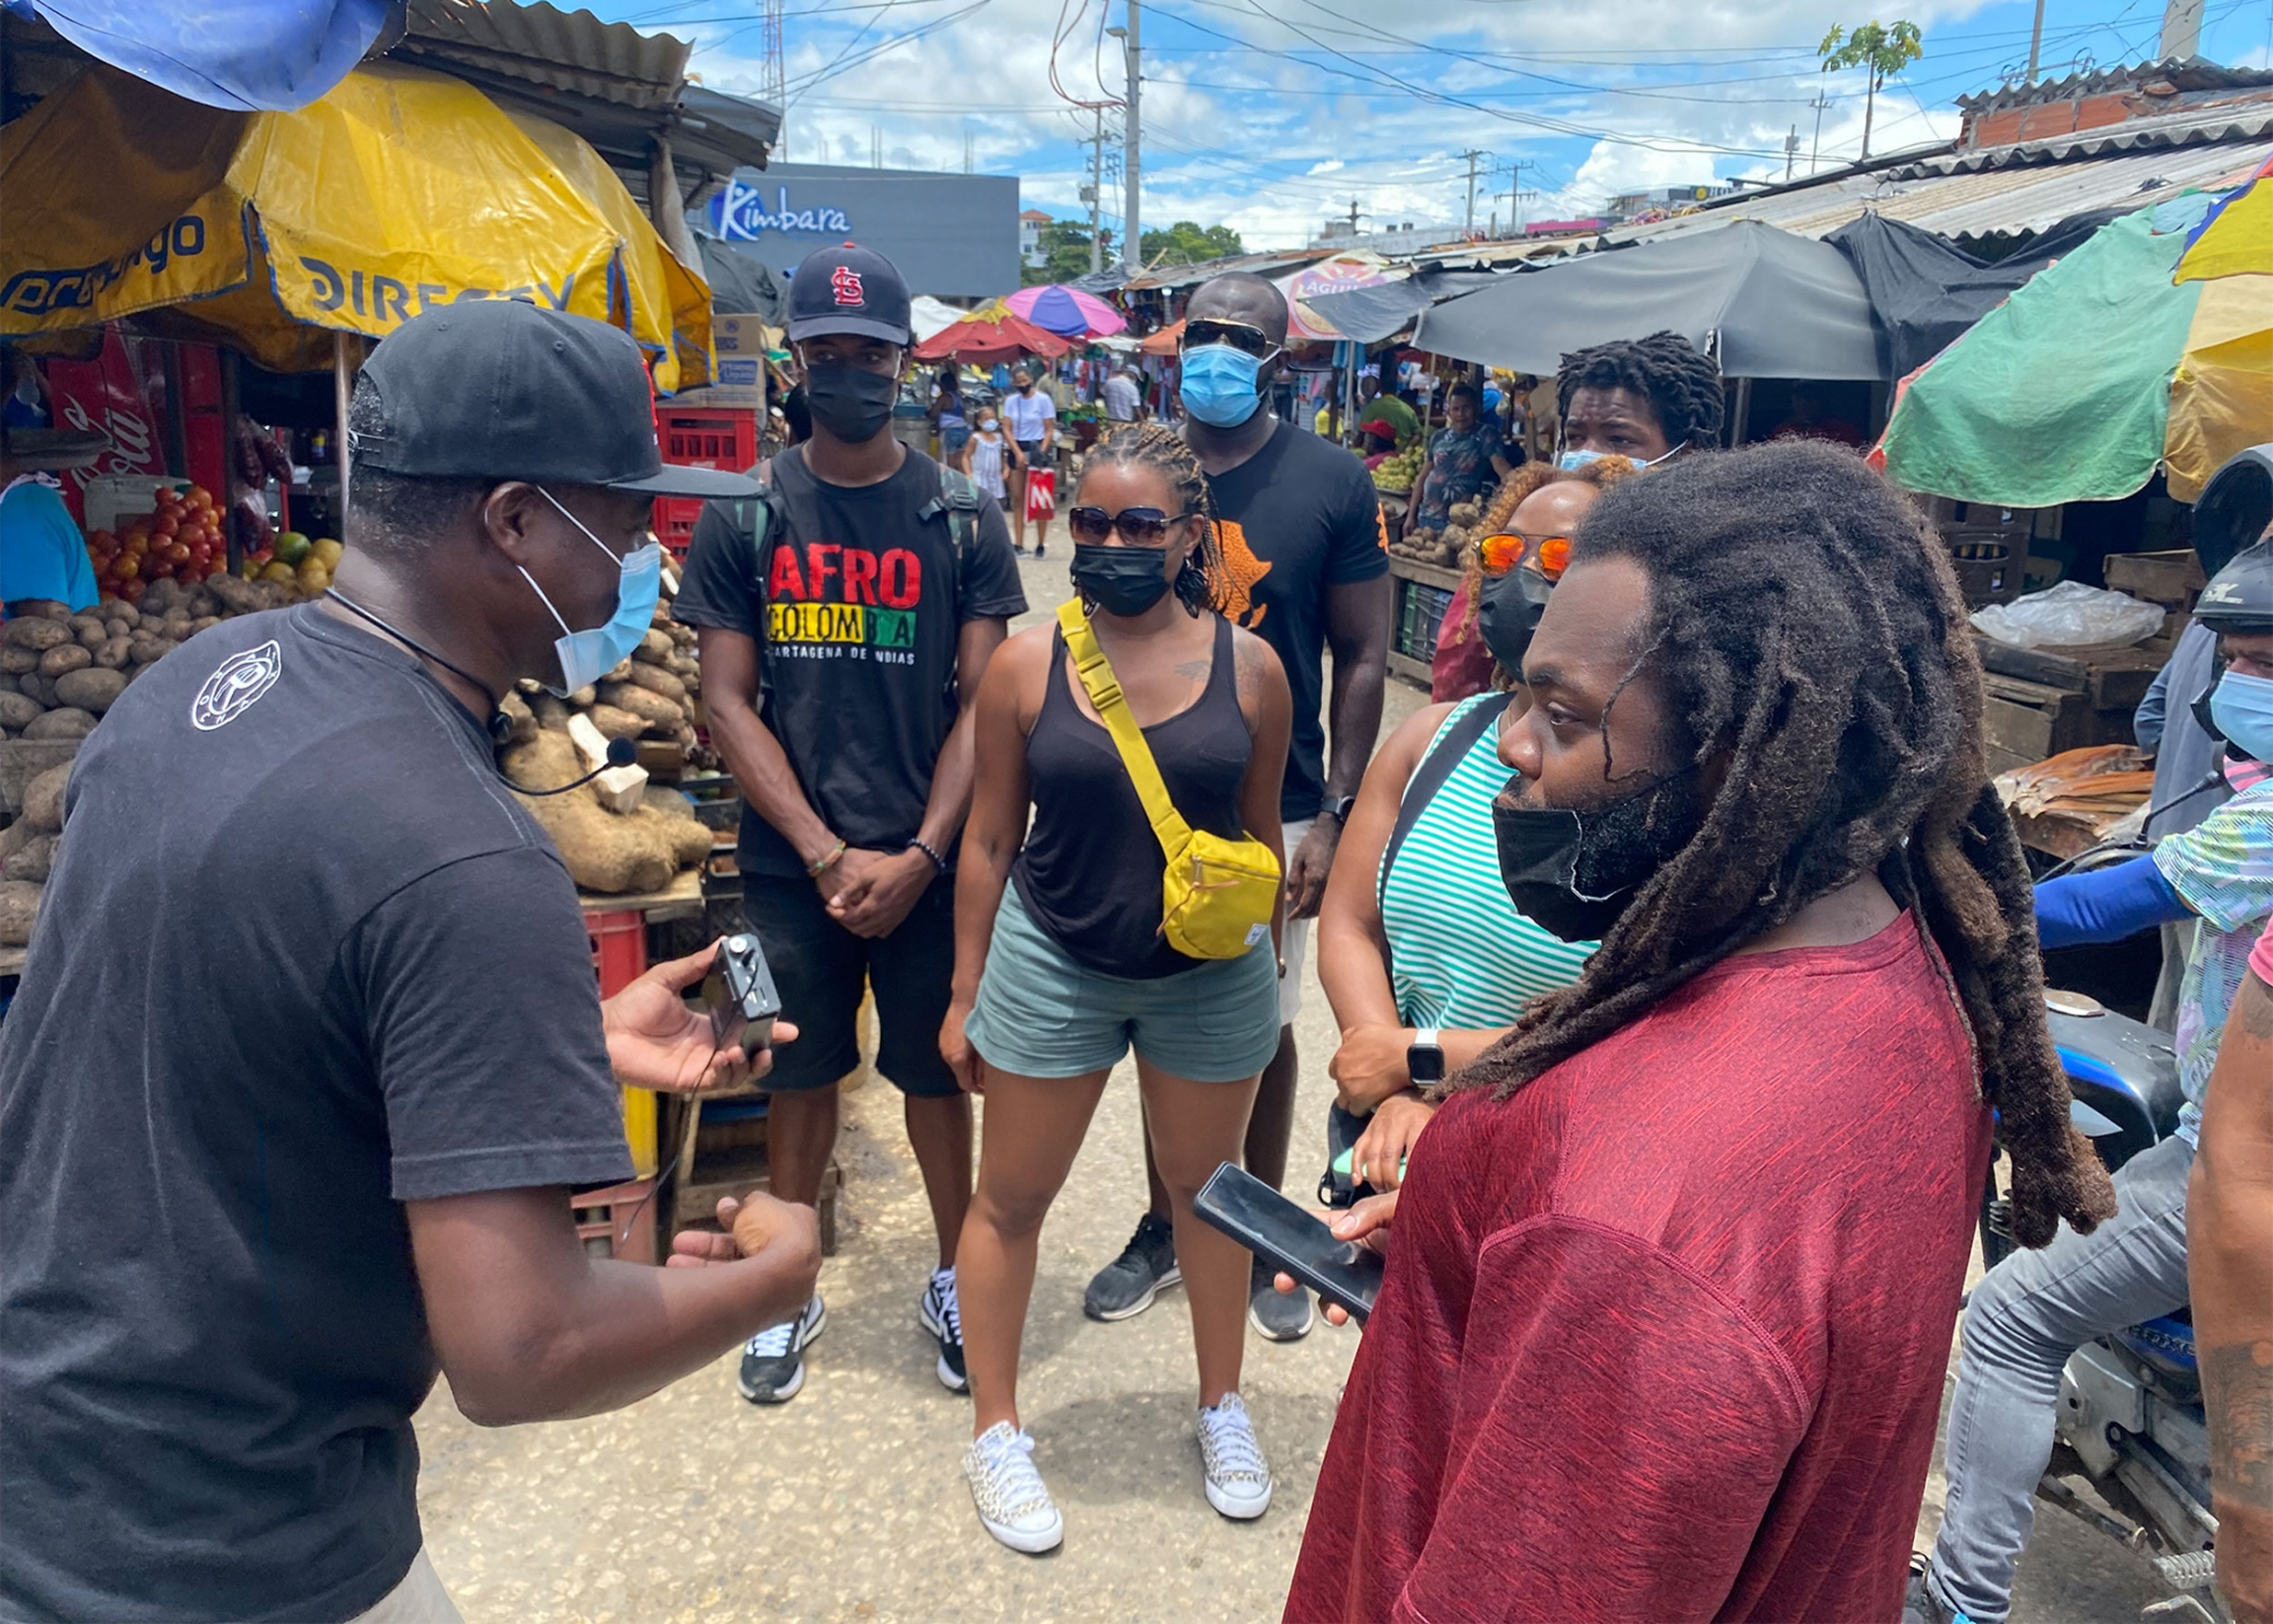 Rocha leads a group of tourists through Cartagena's Bazurto market, where many Afro-Colombians work as street vendors